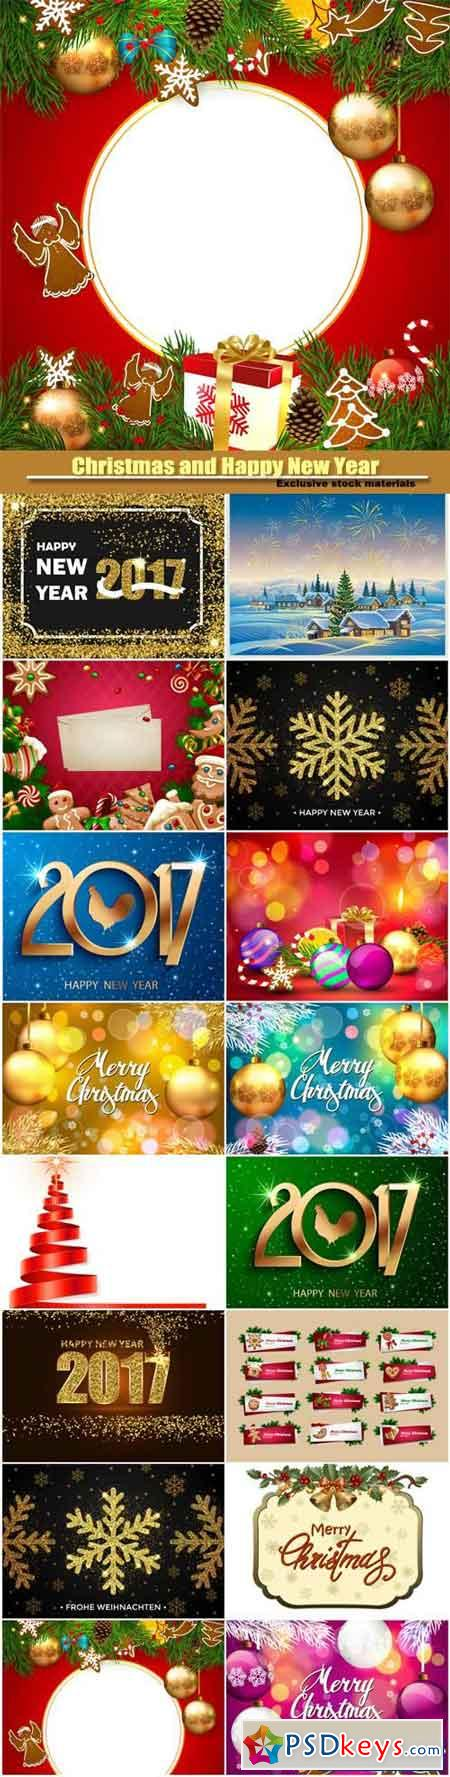 Christmas and Happy New Year 2017, vector party celebration poster